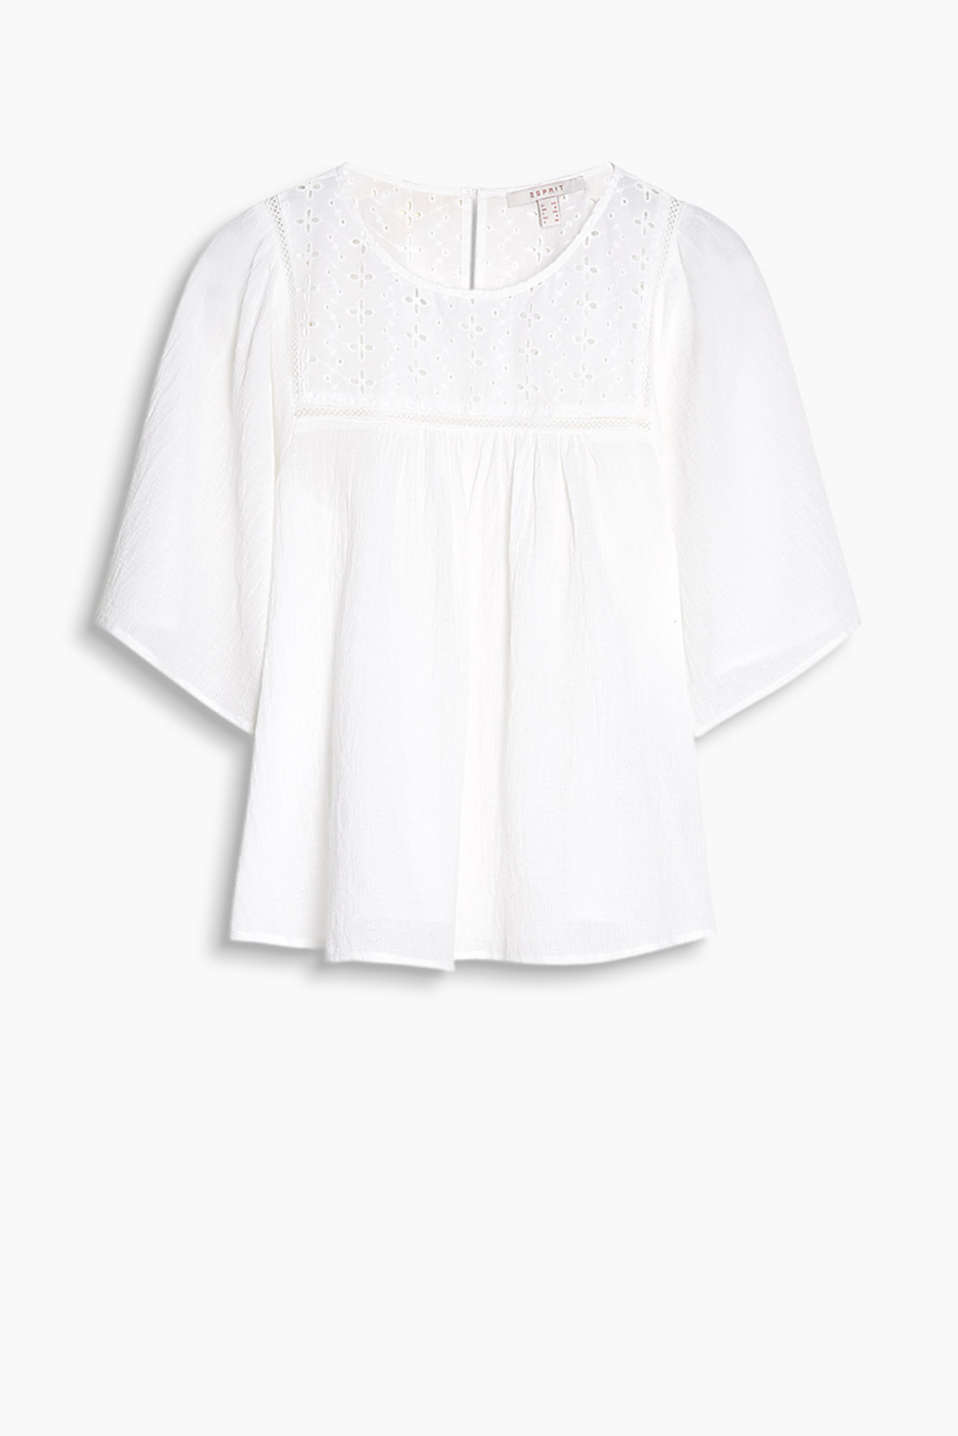 Delicate tunic in textured fabric with airy broderie anglaise and wide sleeves, 100% cotton